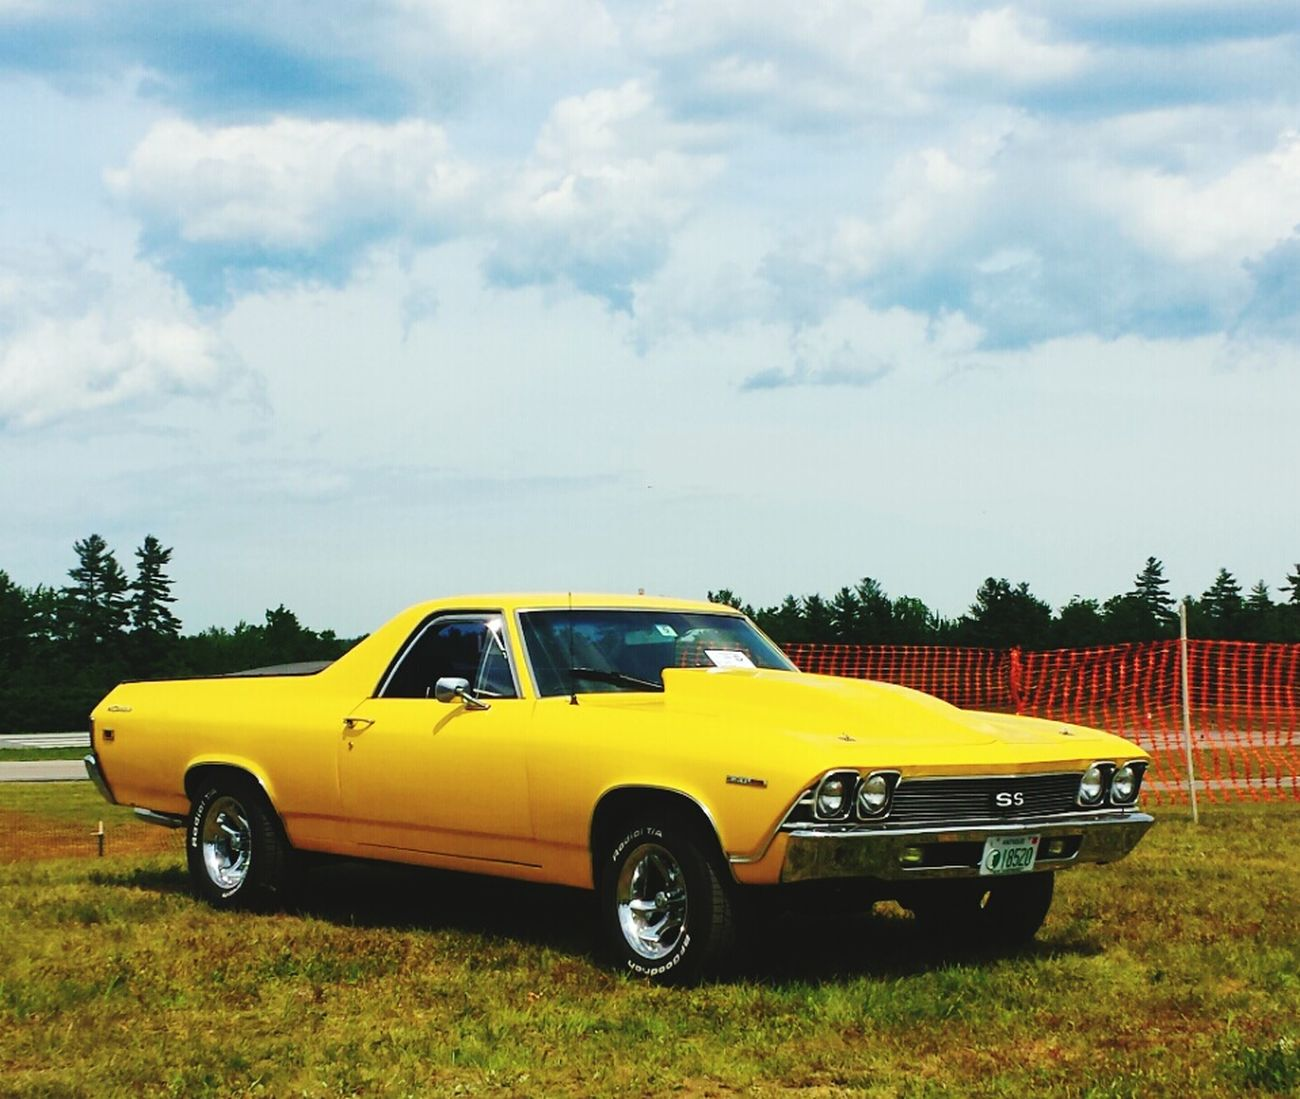 What a beauty El Camino